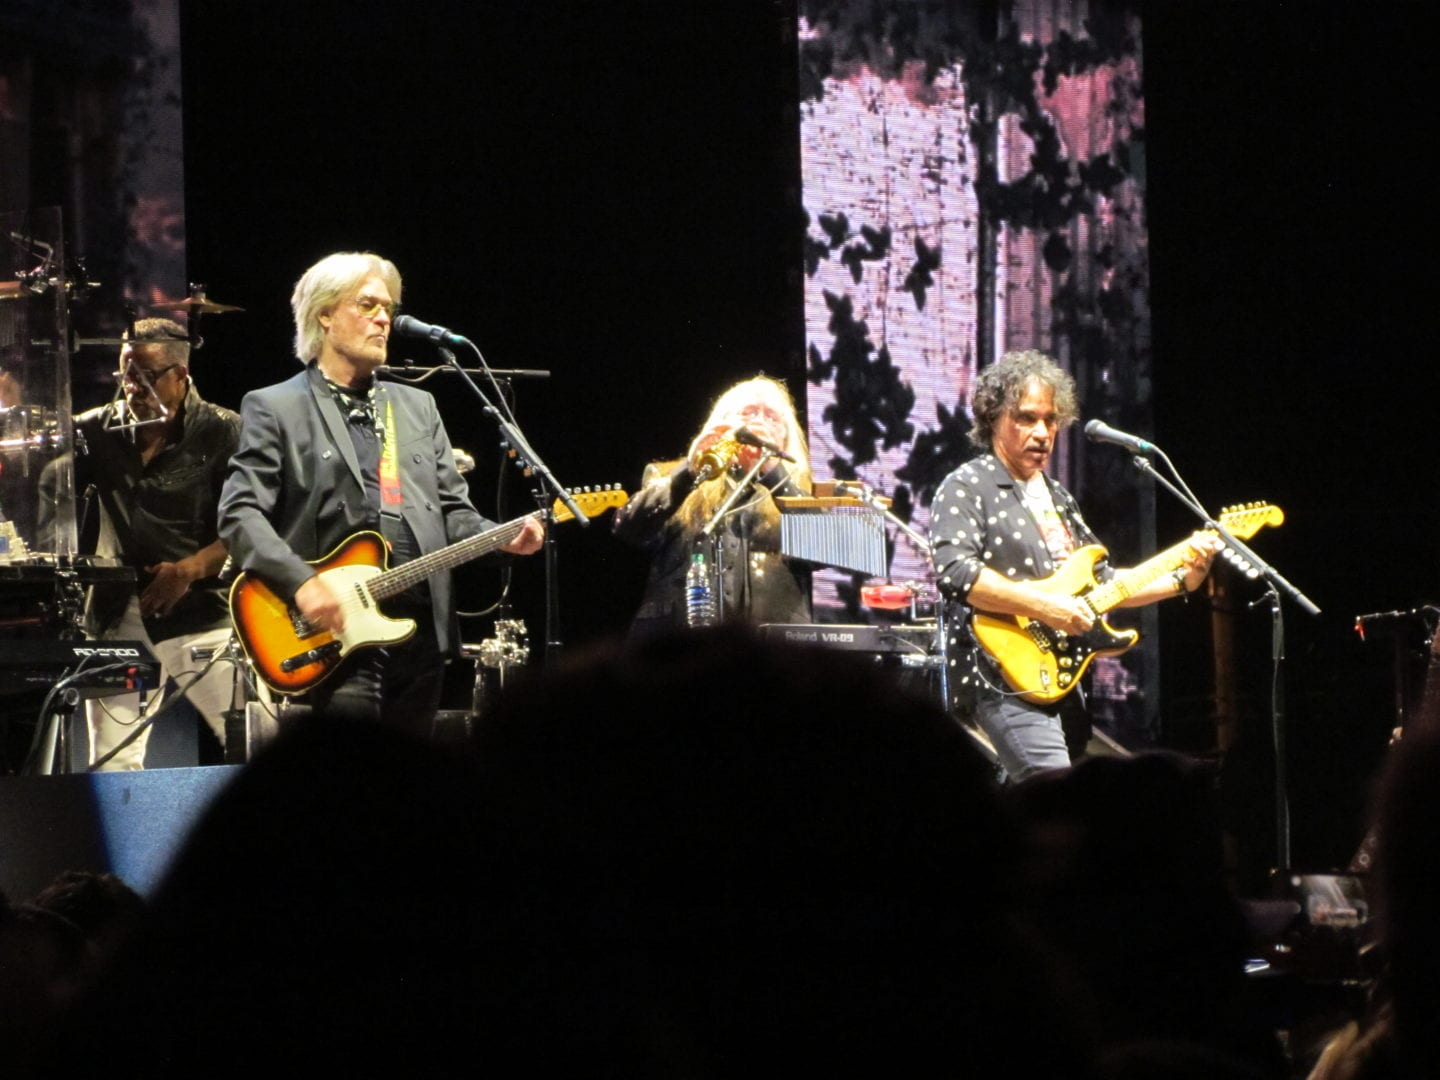 Hall Oates playing his guitar with his band member